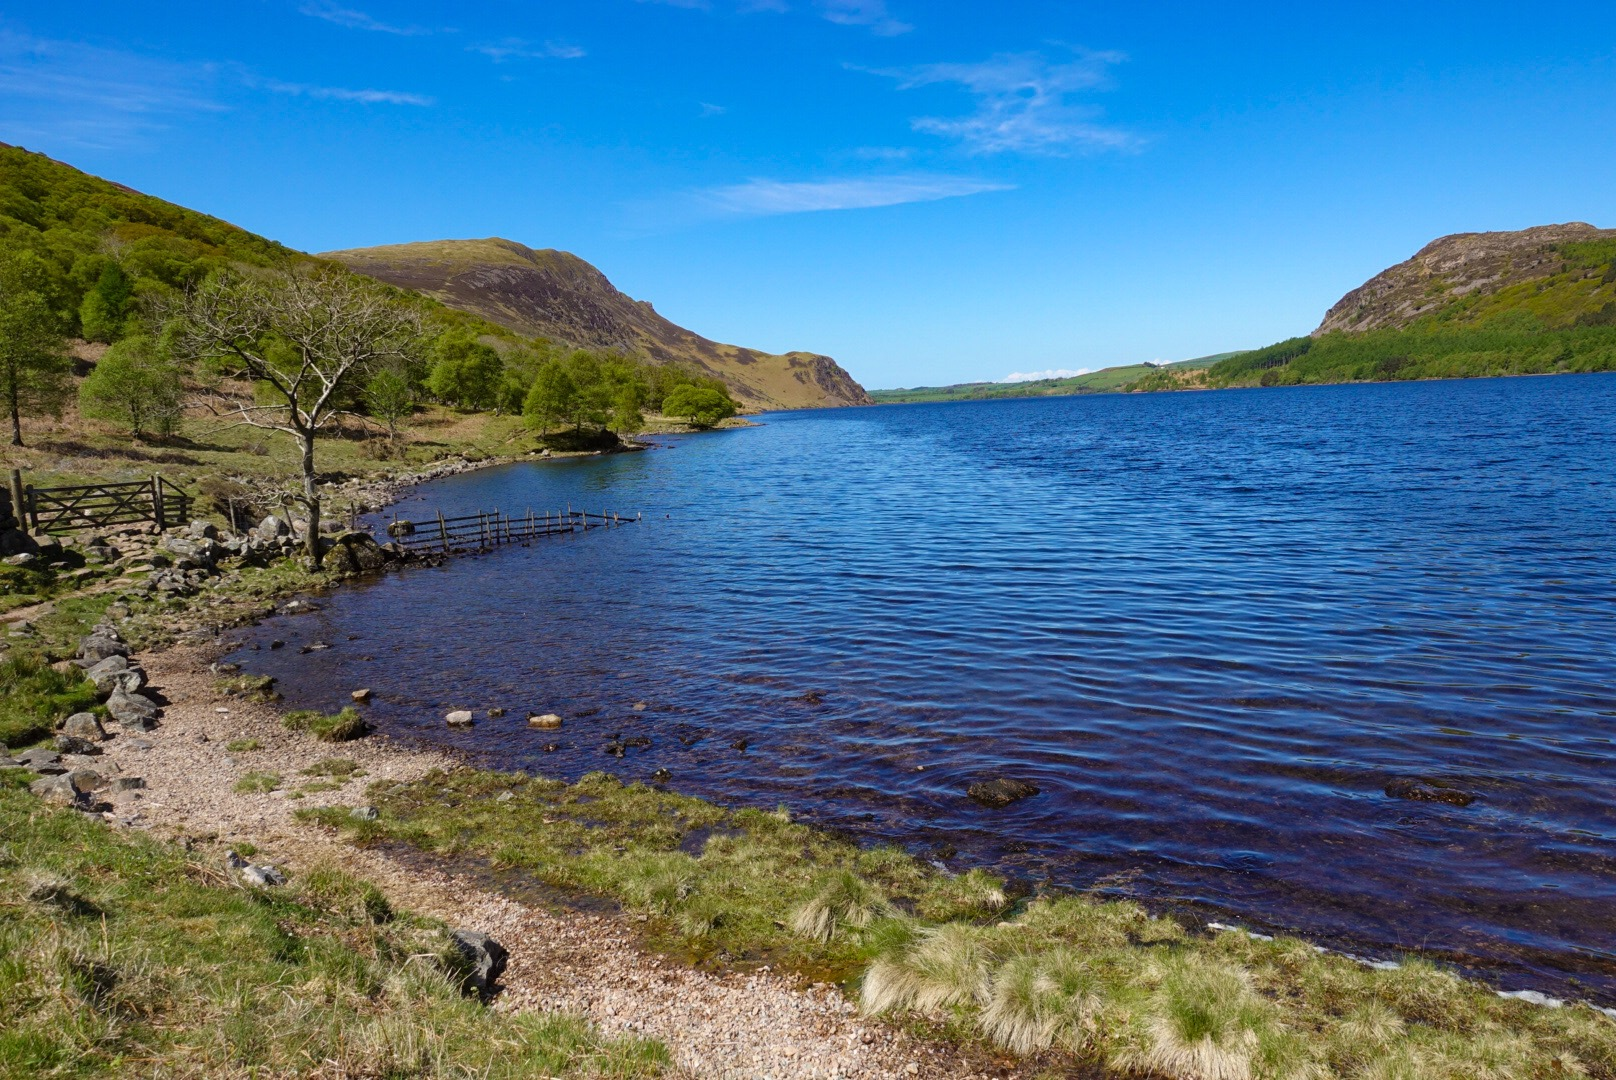 Leaving Ennerdale Water